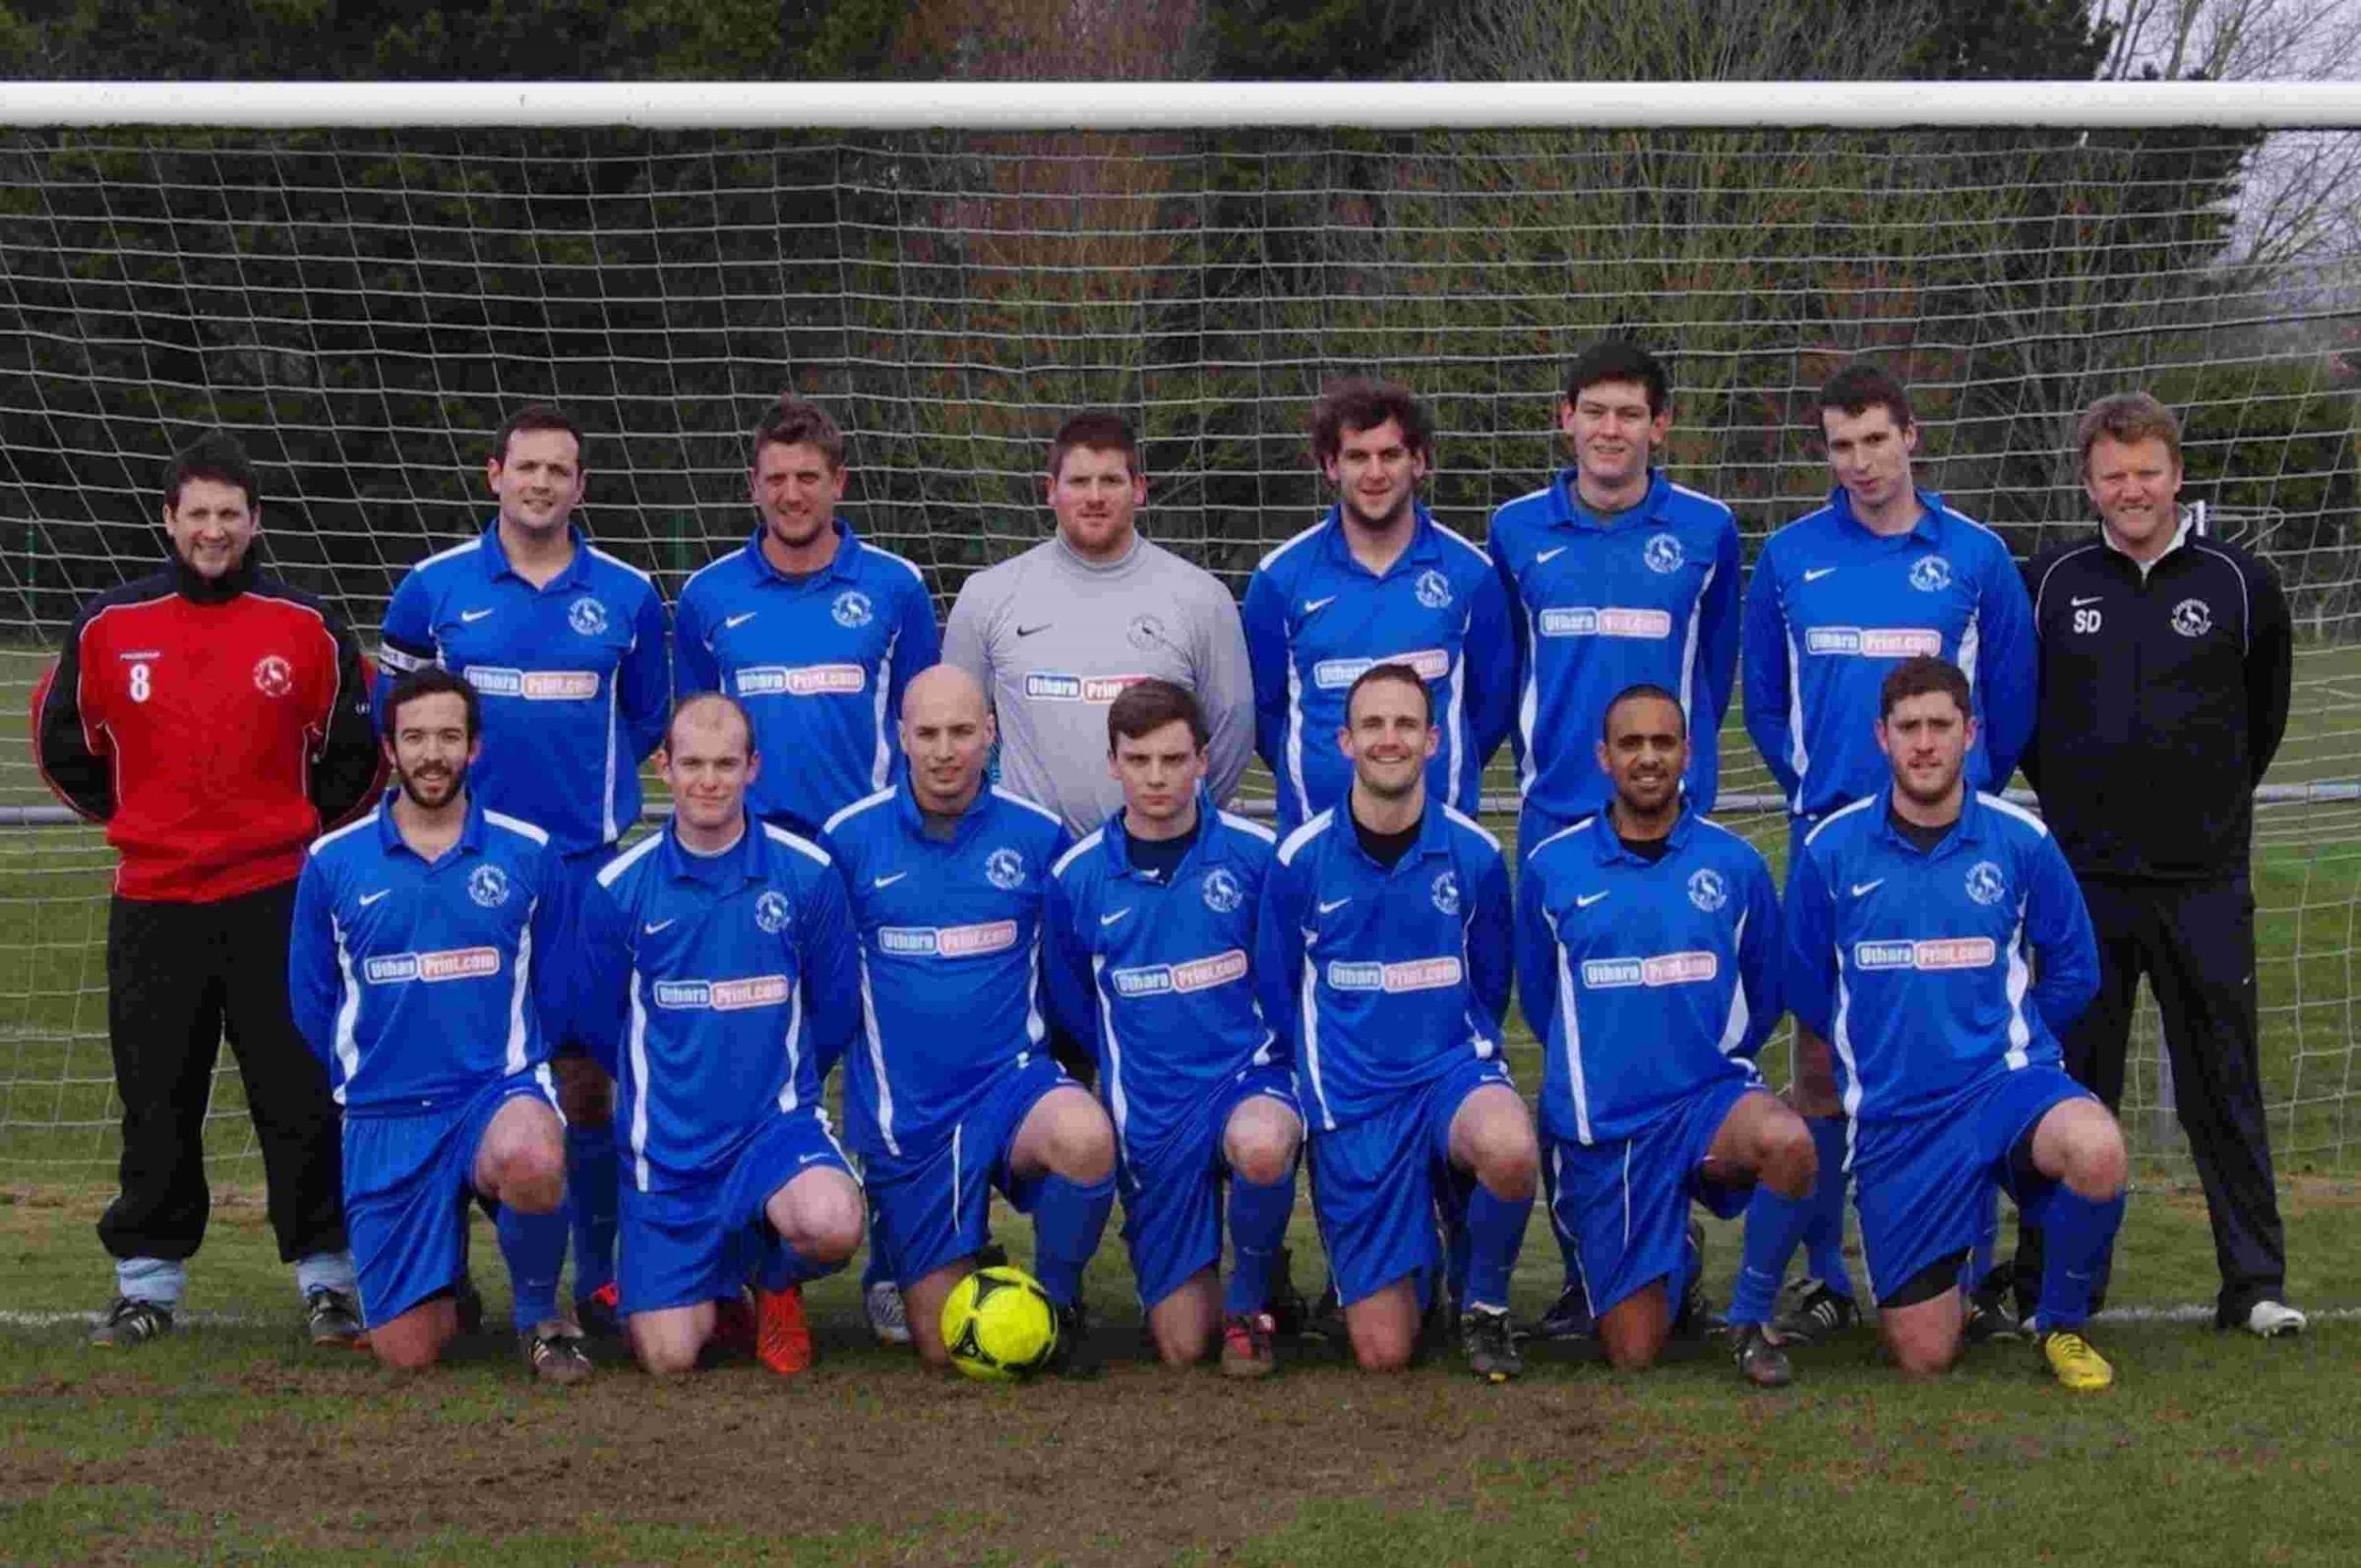 Cranborne FC's first team, which plays in the Dorset Premier League